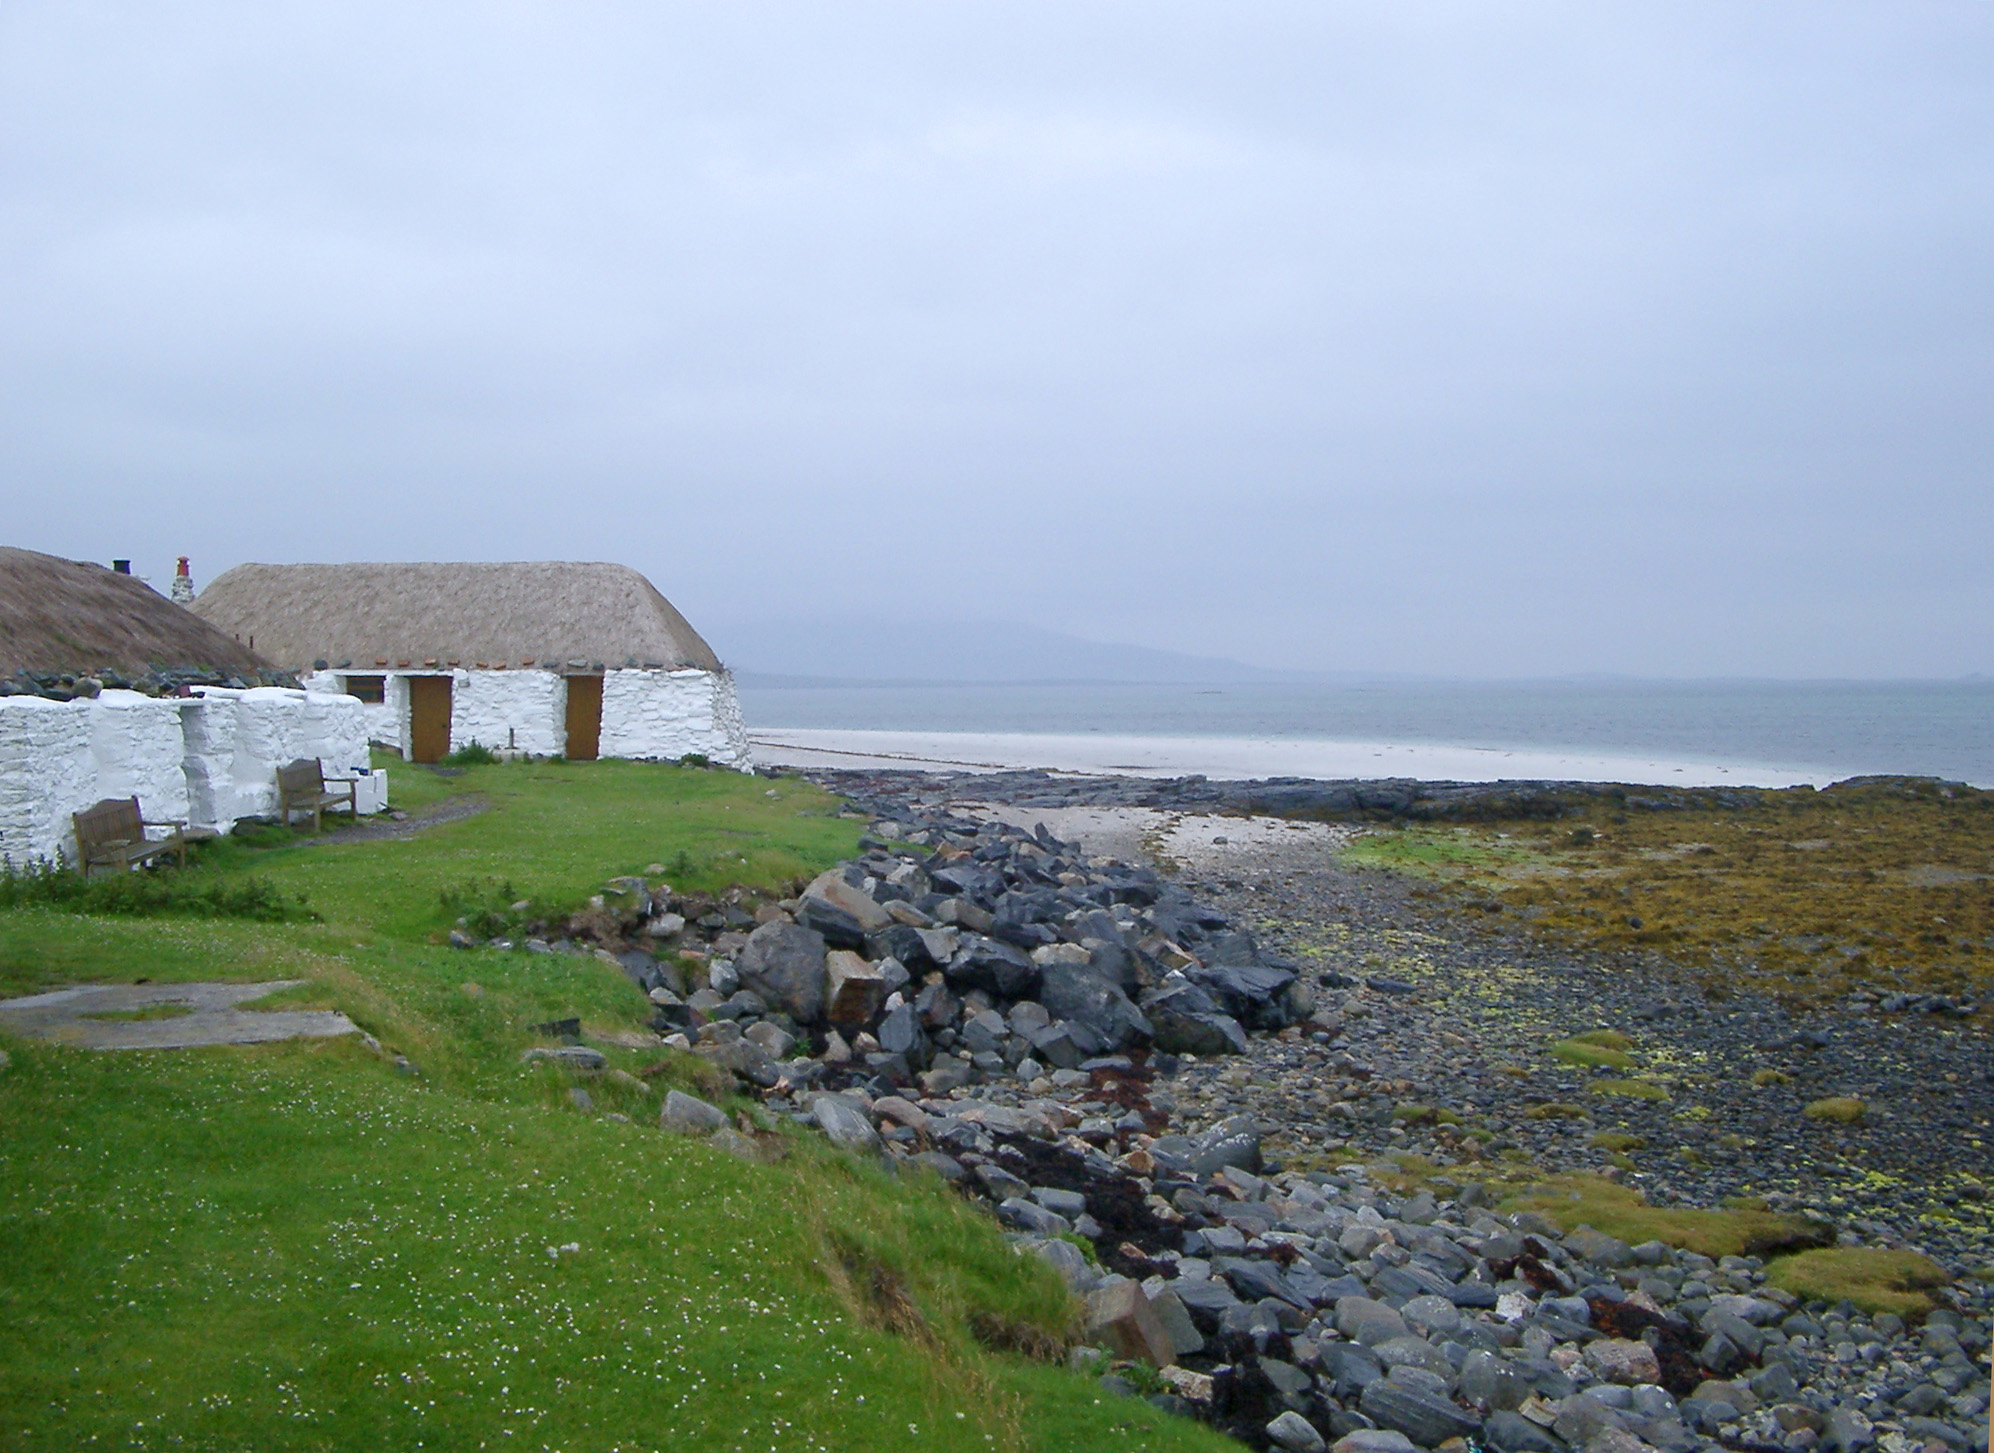 traditional whitewashed thatched youth Hostel on the Isle of Barra in the Outer Hebrides, Scotland overlooking the ocean